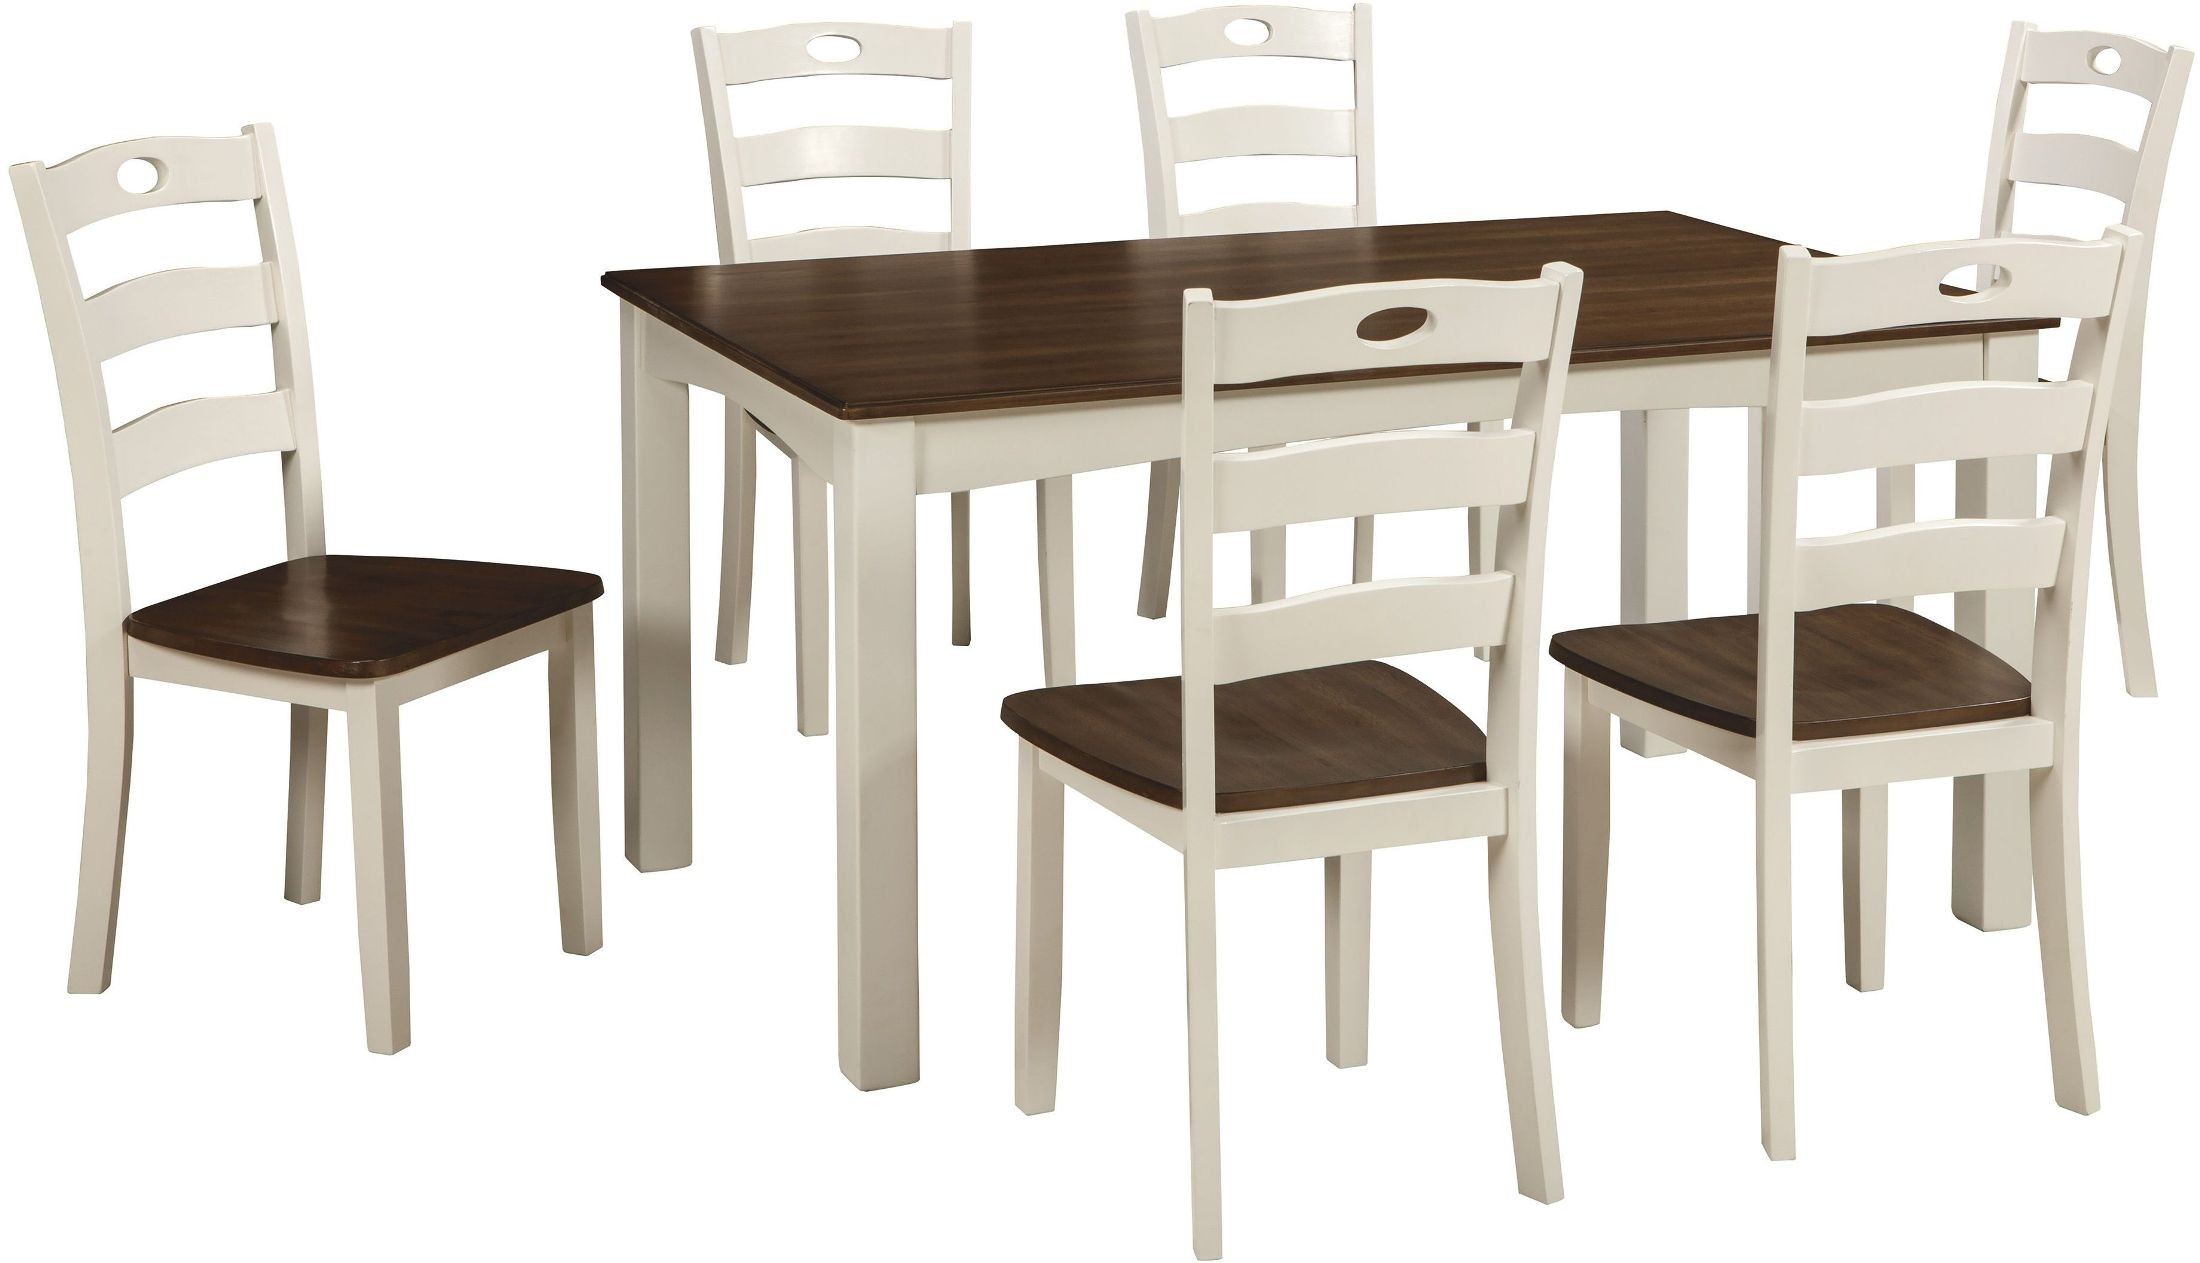 Woodanville White and Brown 7 Piece Dining Room Set from ...